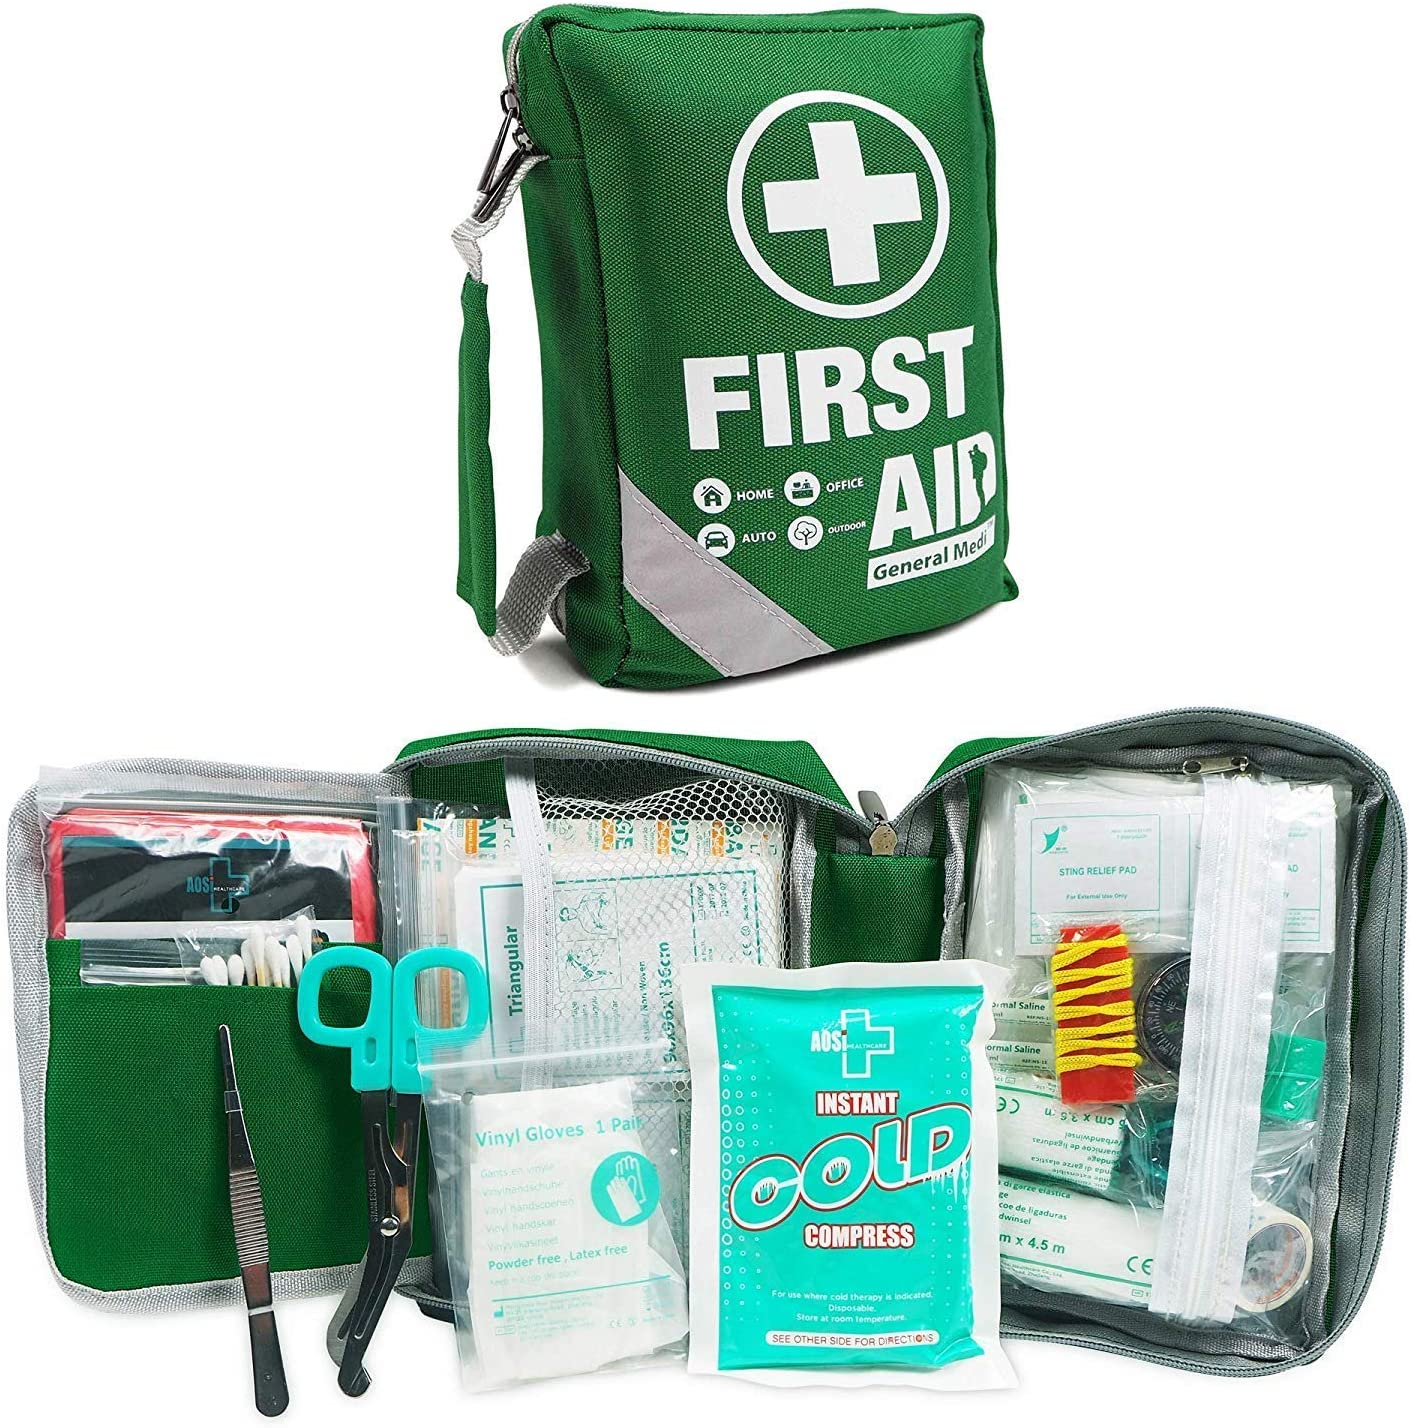 First Aid Kit Compact First Aid Bag 175 Piece Includes 2 X Eyewash Instant Cold Pack Emergency Blanket Cpr Respirator For Home Office Vehicle Camping Workplace Outdoor Health Personal Care Amazon Com